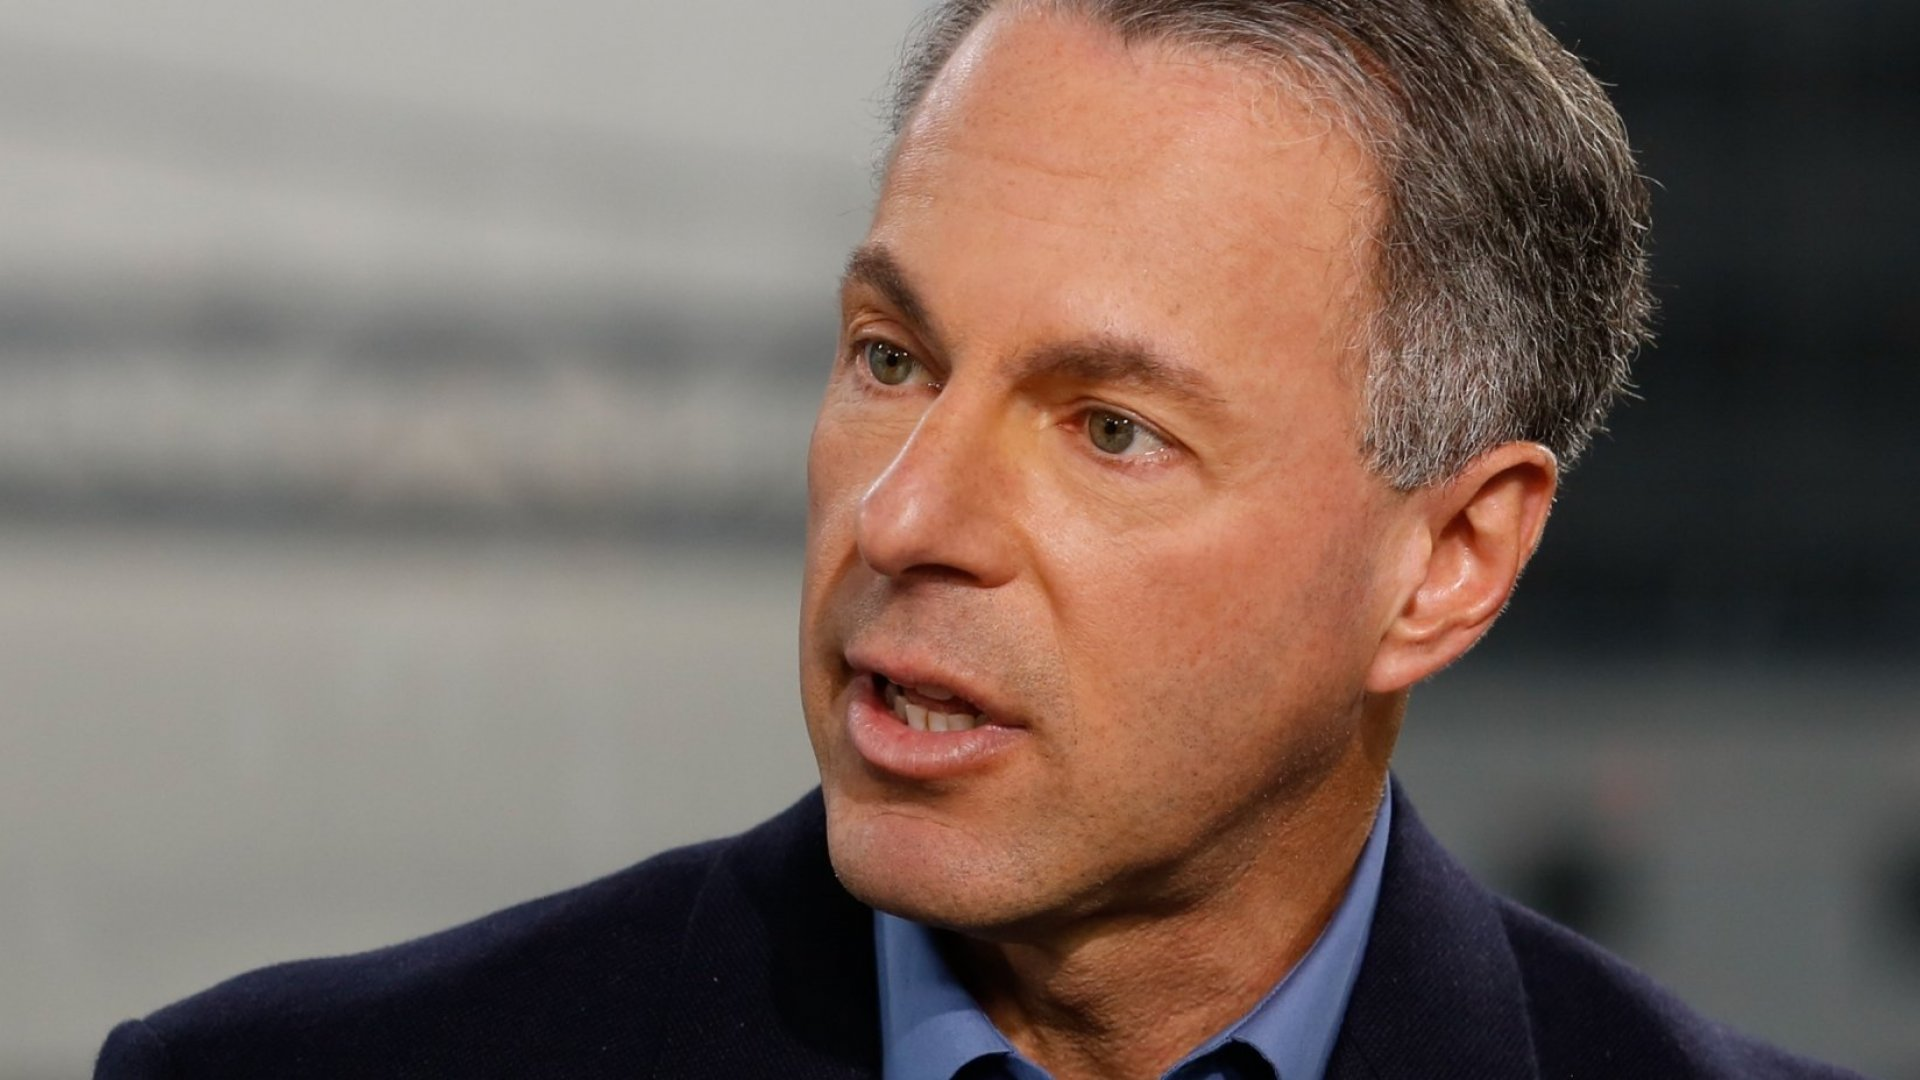 eBay CEO David Wenig Reflects on Company's Immigrant Founder Following Elections